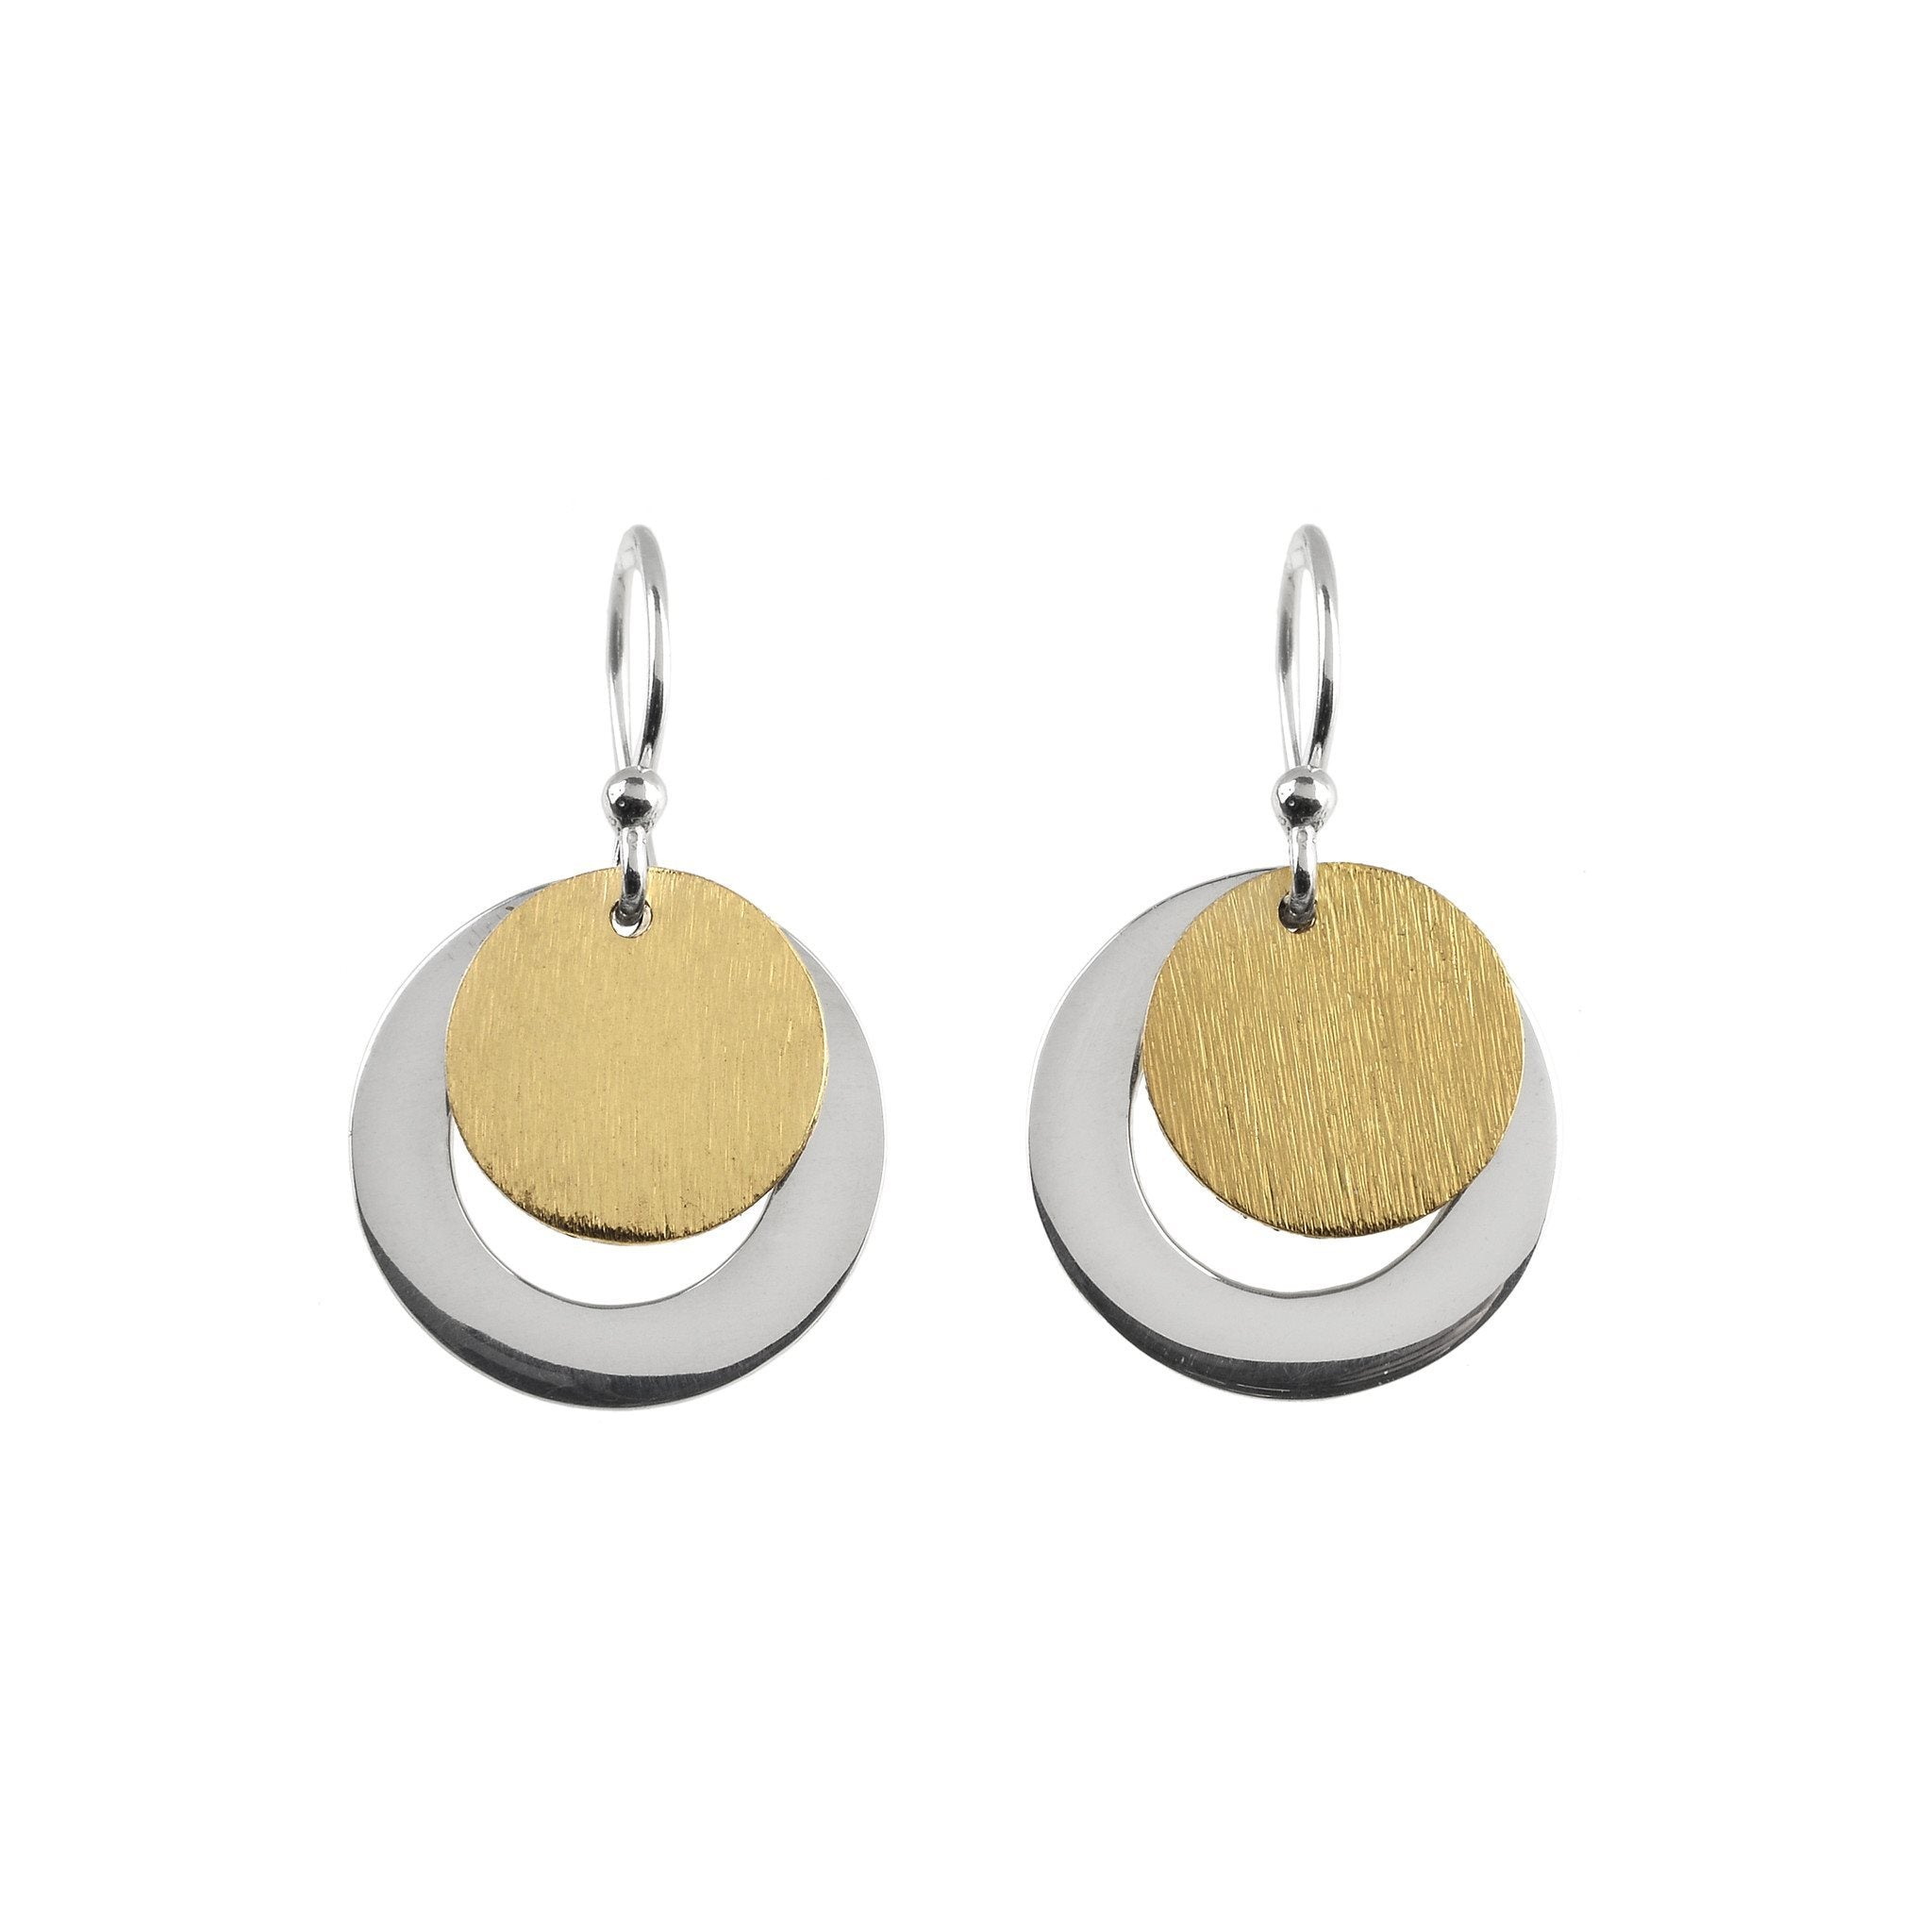 Silver and Gold Vermeil Drop Earrings - Fiyah Jewellery - 1